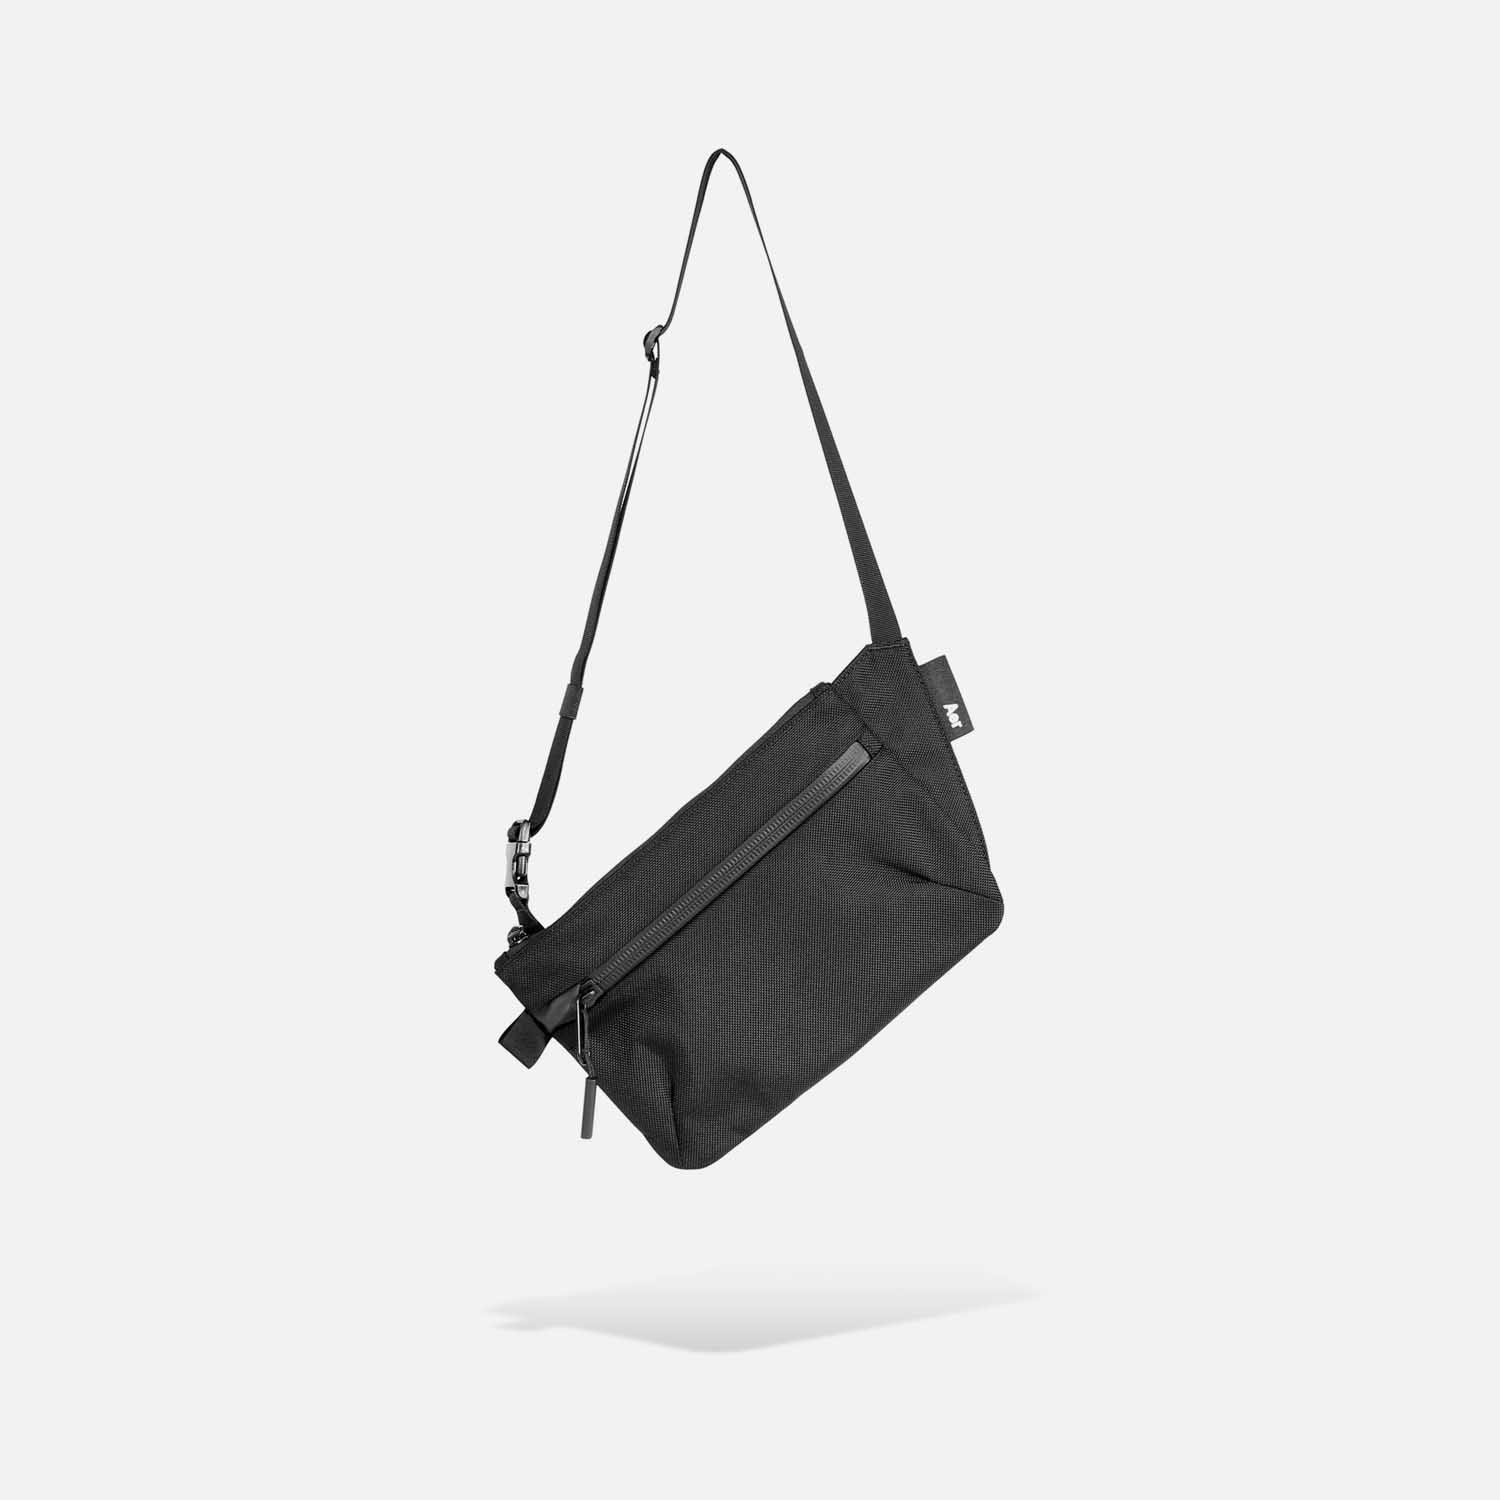 21019_slingpouch_black_hang.jpg